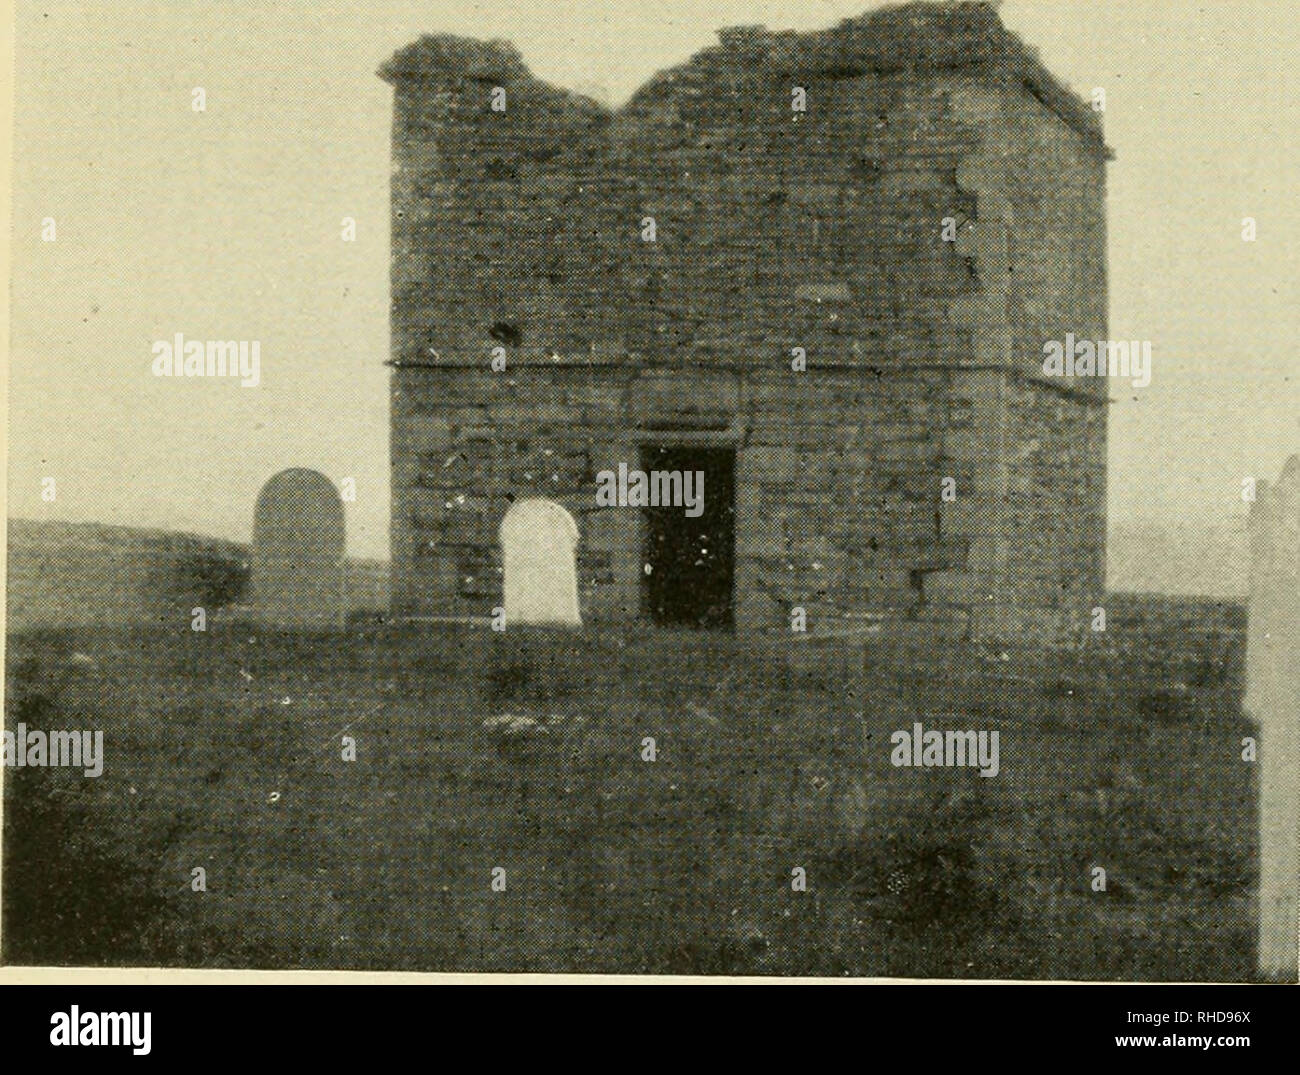 . A book of dovecotes. Dovecotes. STROMA ISLAND, CAITHNESS. Please note that these images are extracted from scanned page images that may have been digitally enhanced for readability - coloration and appearance of these illustrations may not perfectly resemble the original work.. Cooke, Arthur O. (Arthur Owens), 1867-1930. London, Boston [etc. ] T. N. Foulis - Stock Image